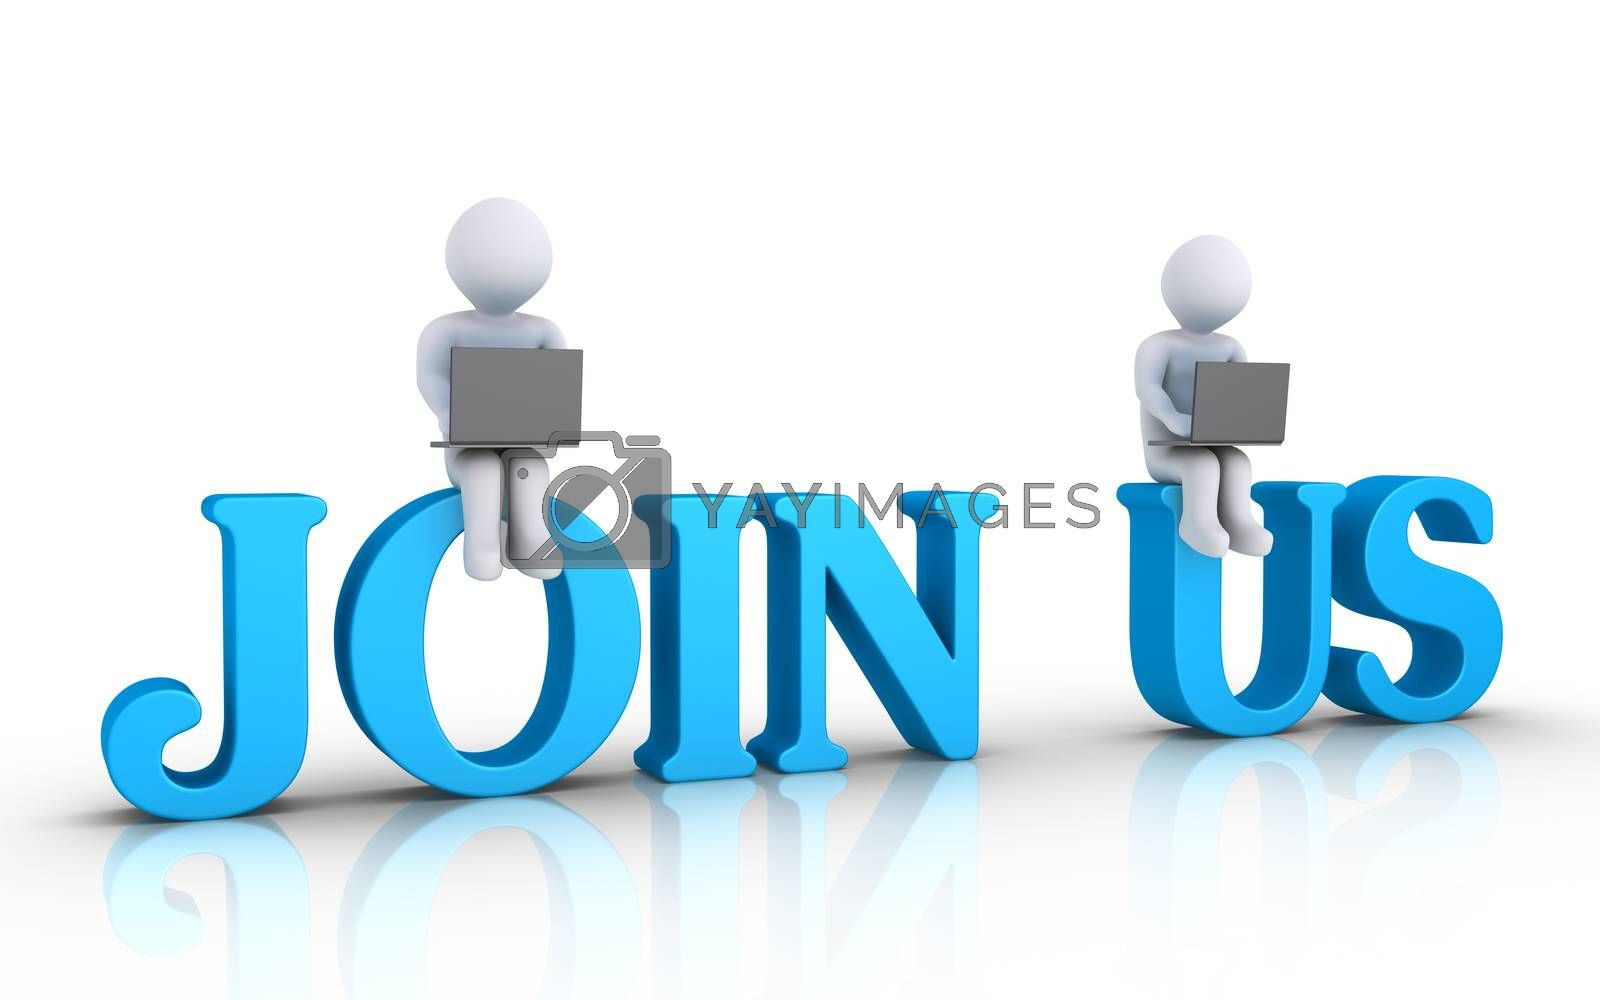 Two 3d people with laptops are sitting on JOIN US letters